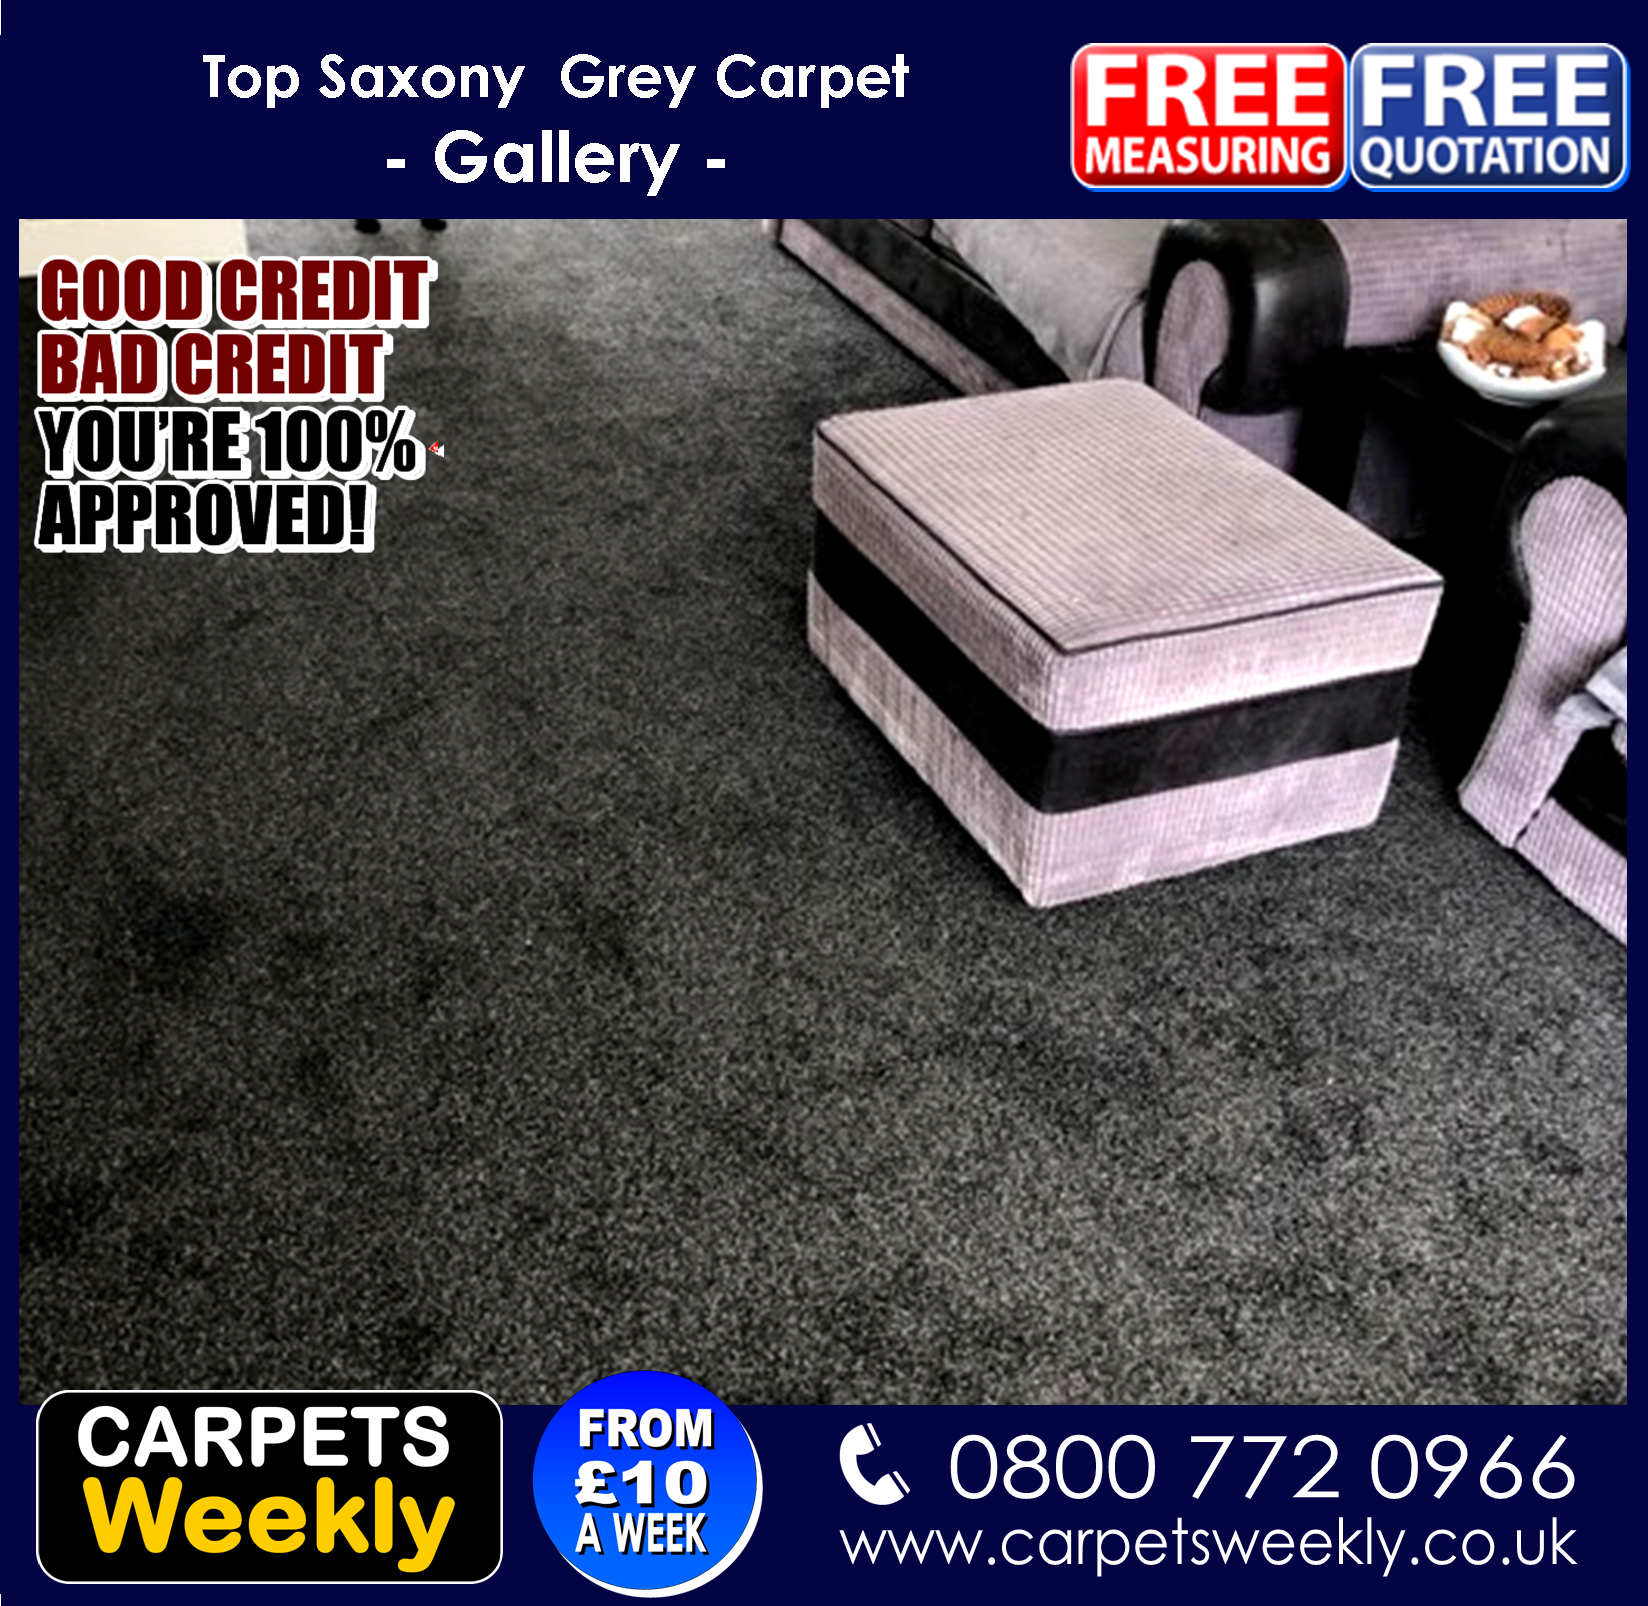 Top Saxony Grey Carpet from Carpers Weekly